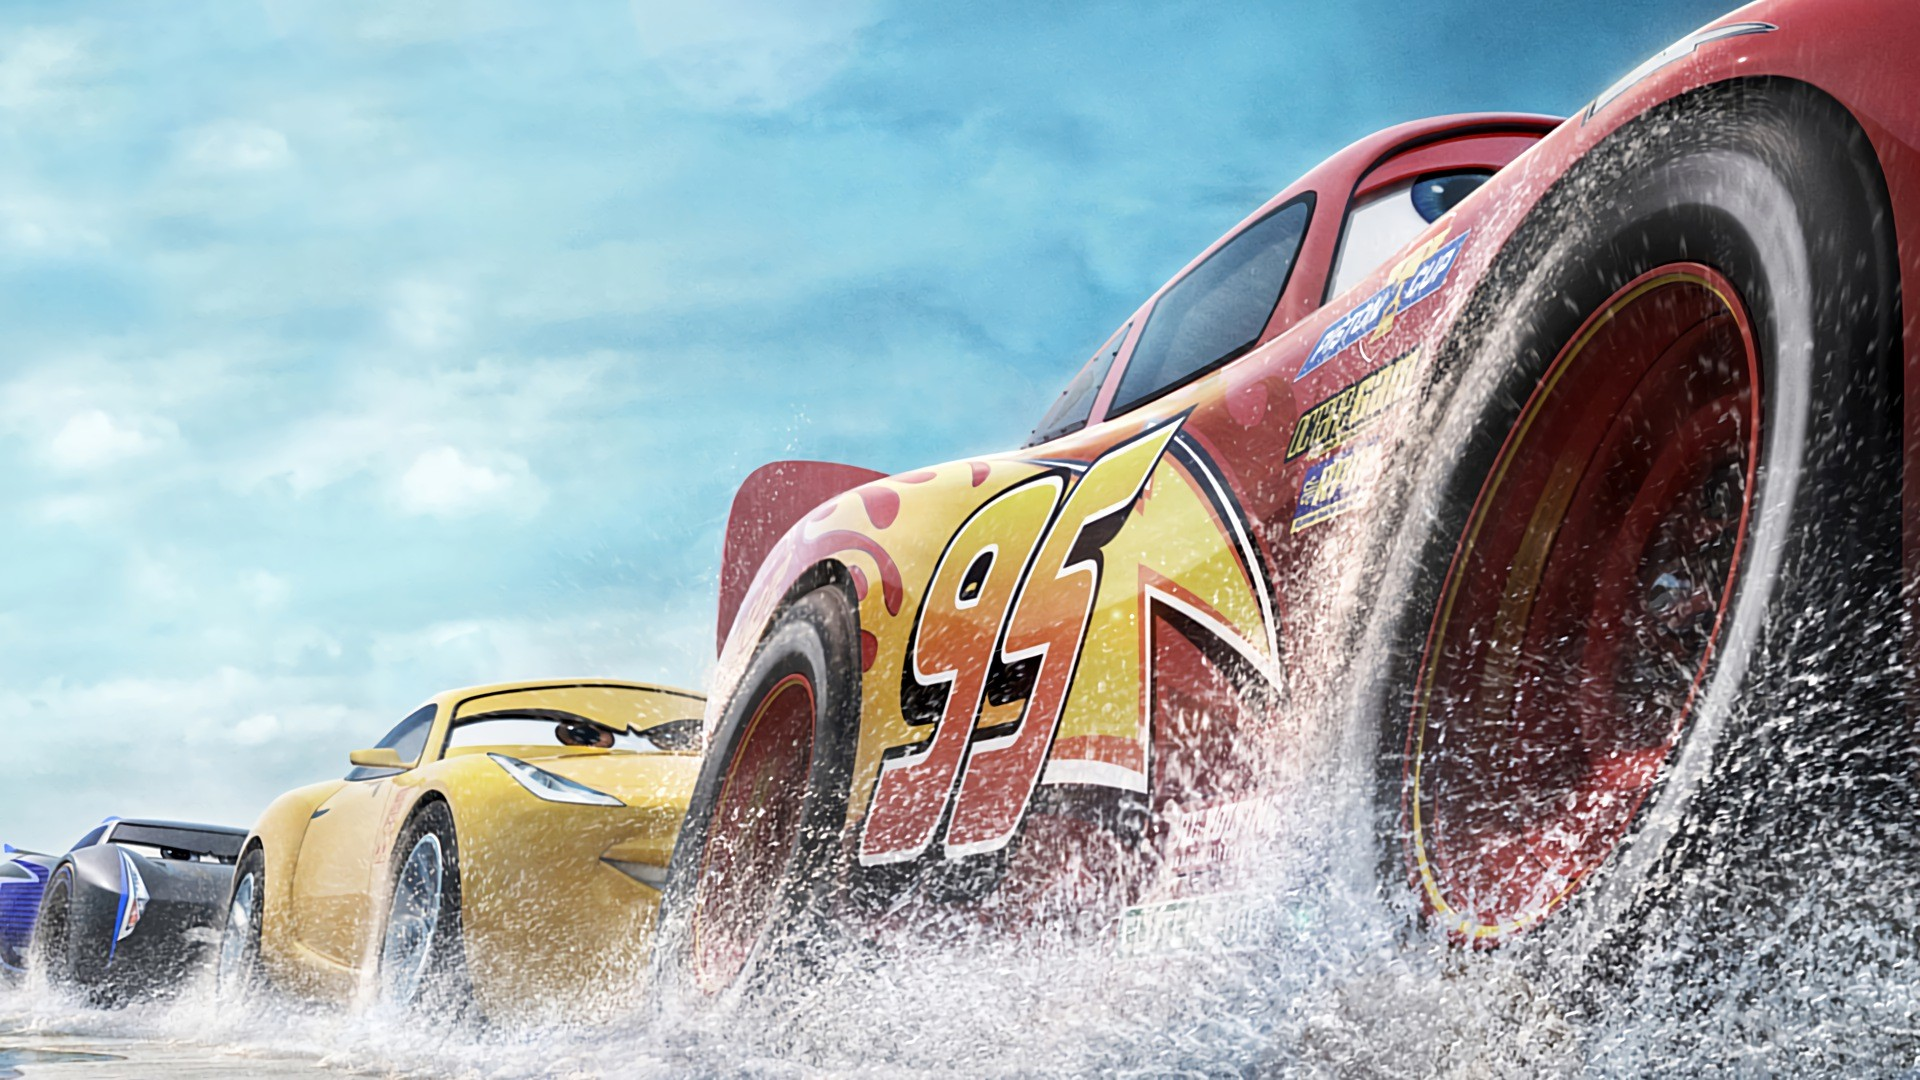 Cars 2 Wallpaper Posted By Ethan Peltier